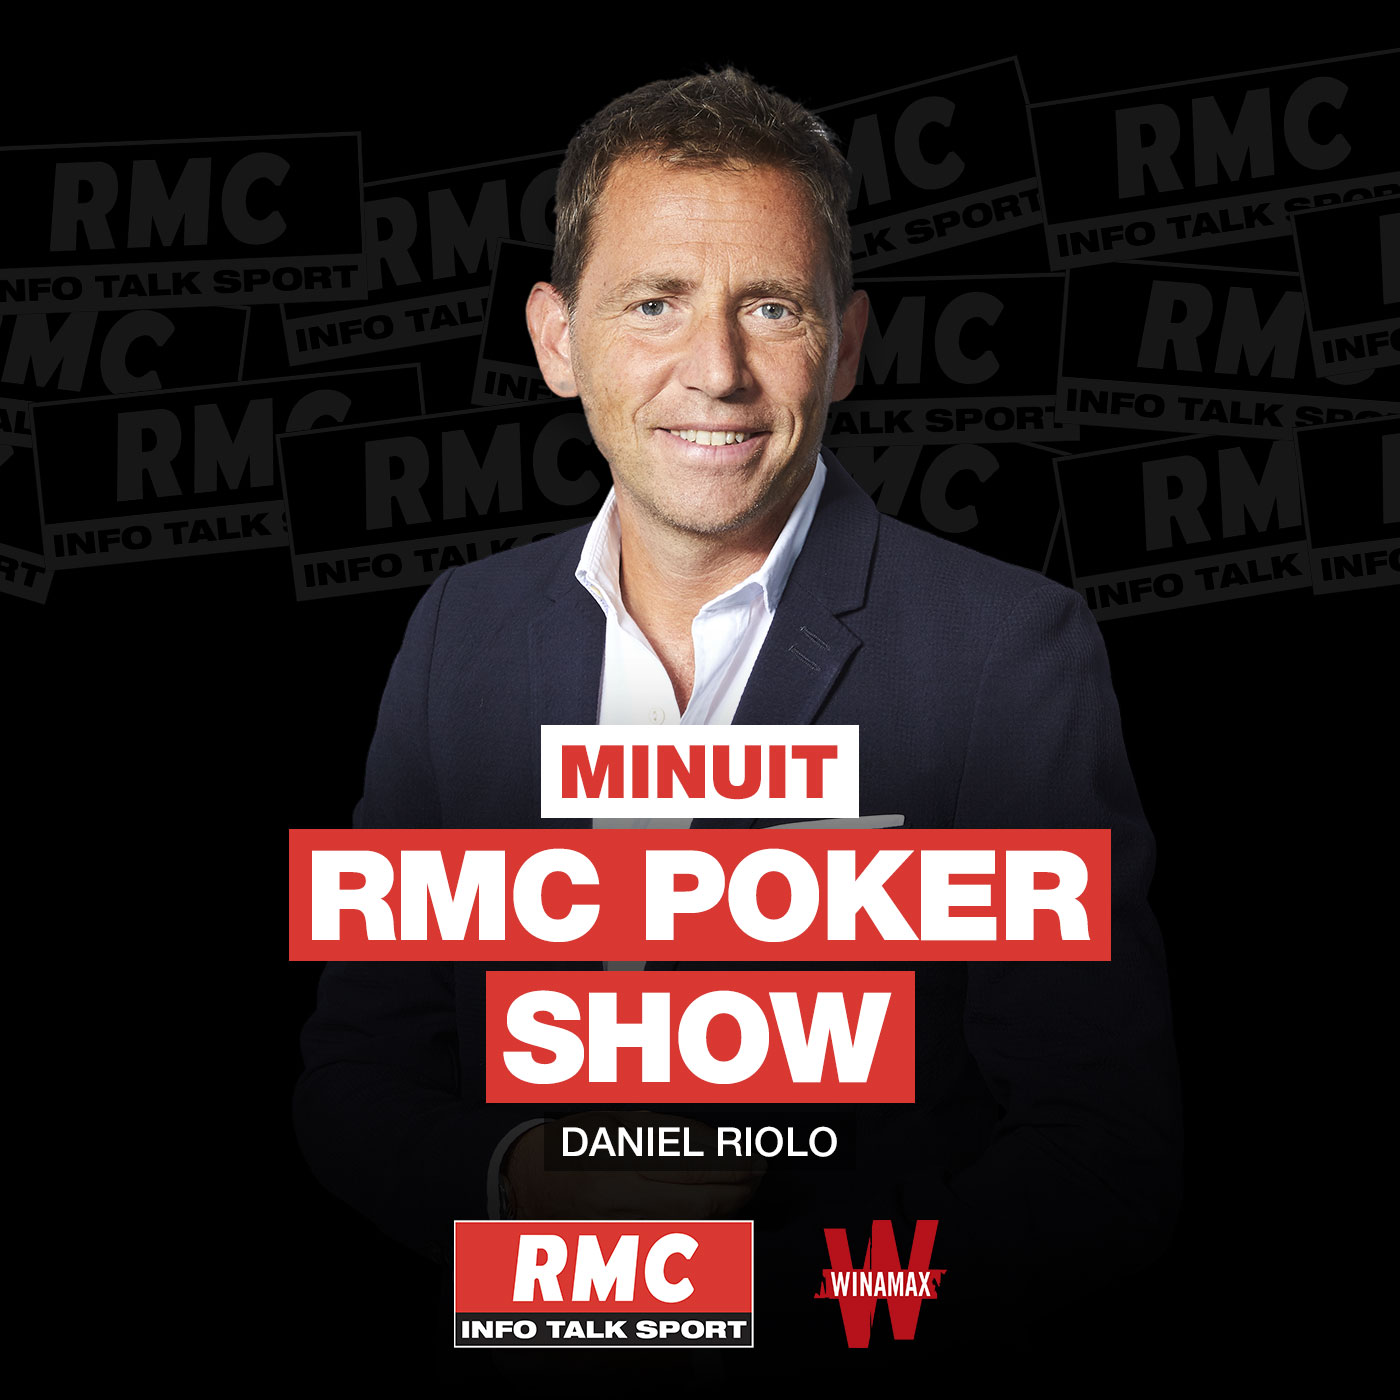 Image 1: Podcast RMC Poker Show